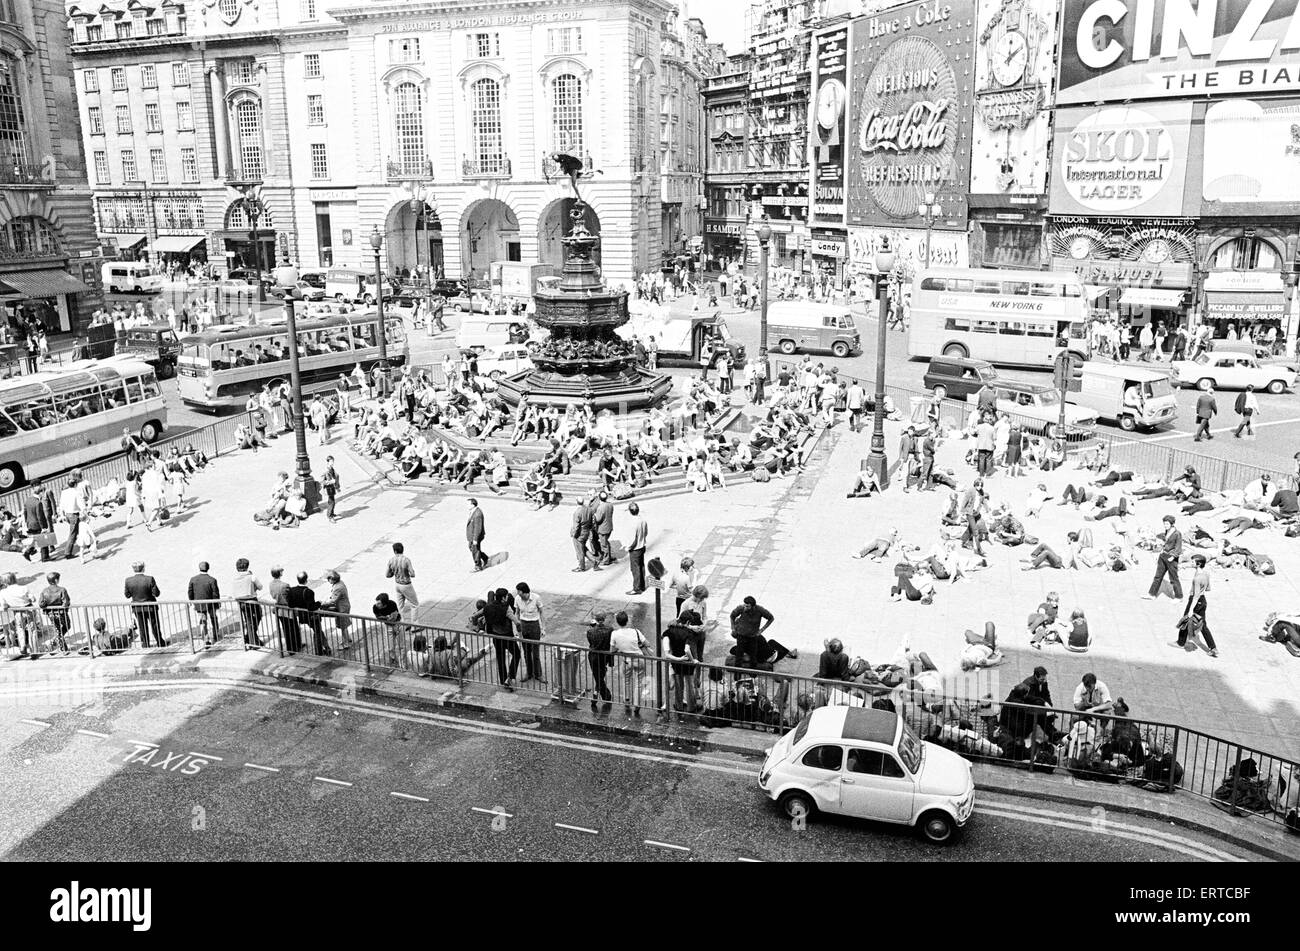 Tourists in Piccadilly, London, 10th August 1969. - Stock Image